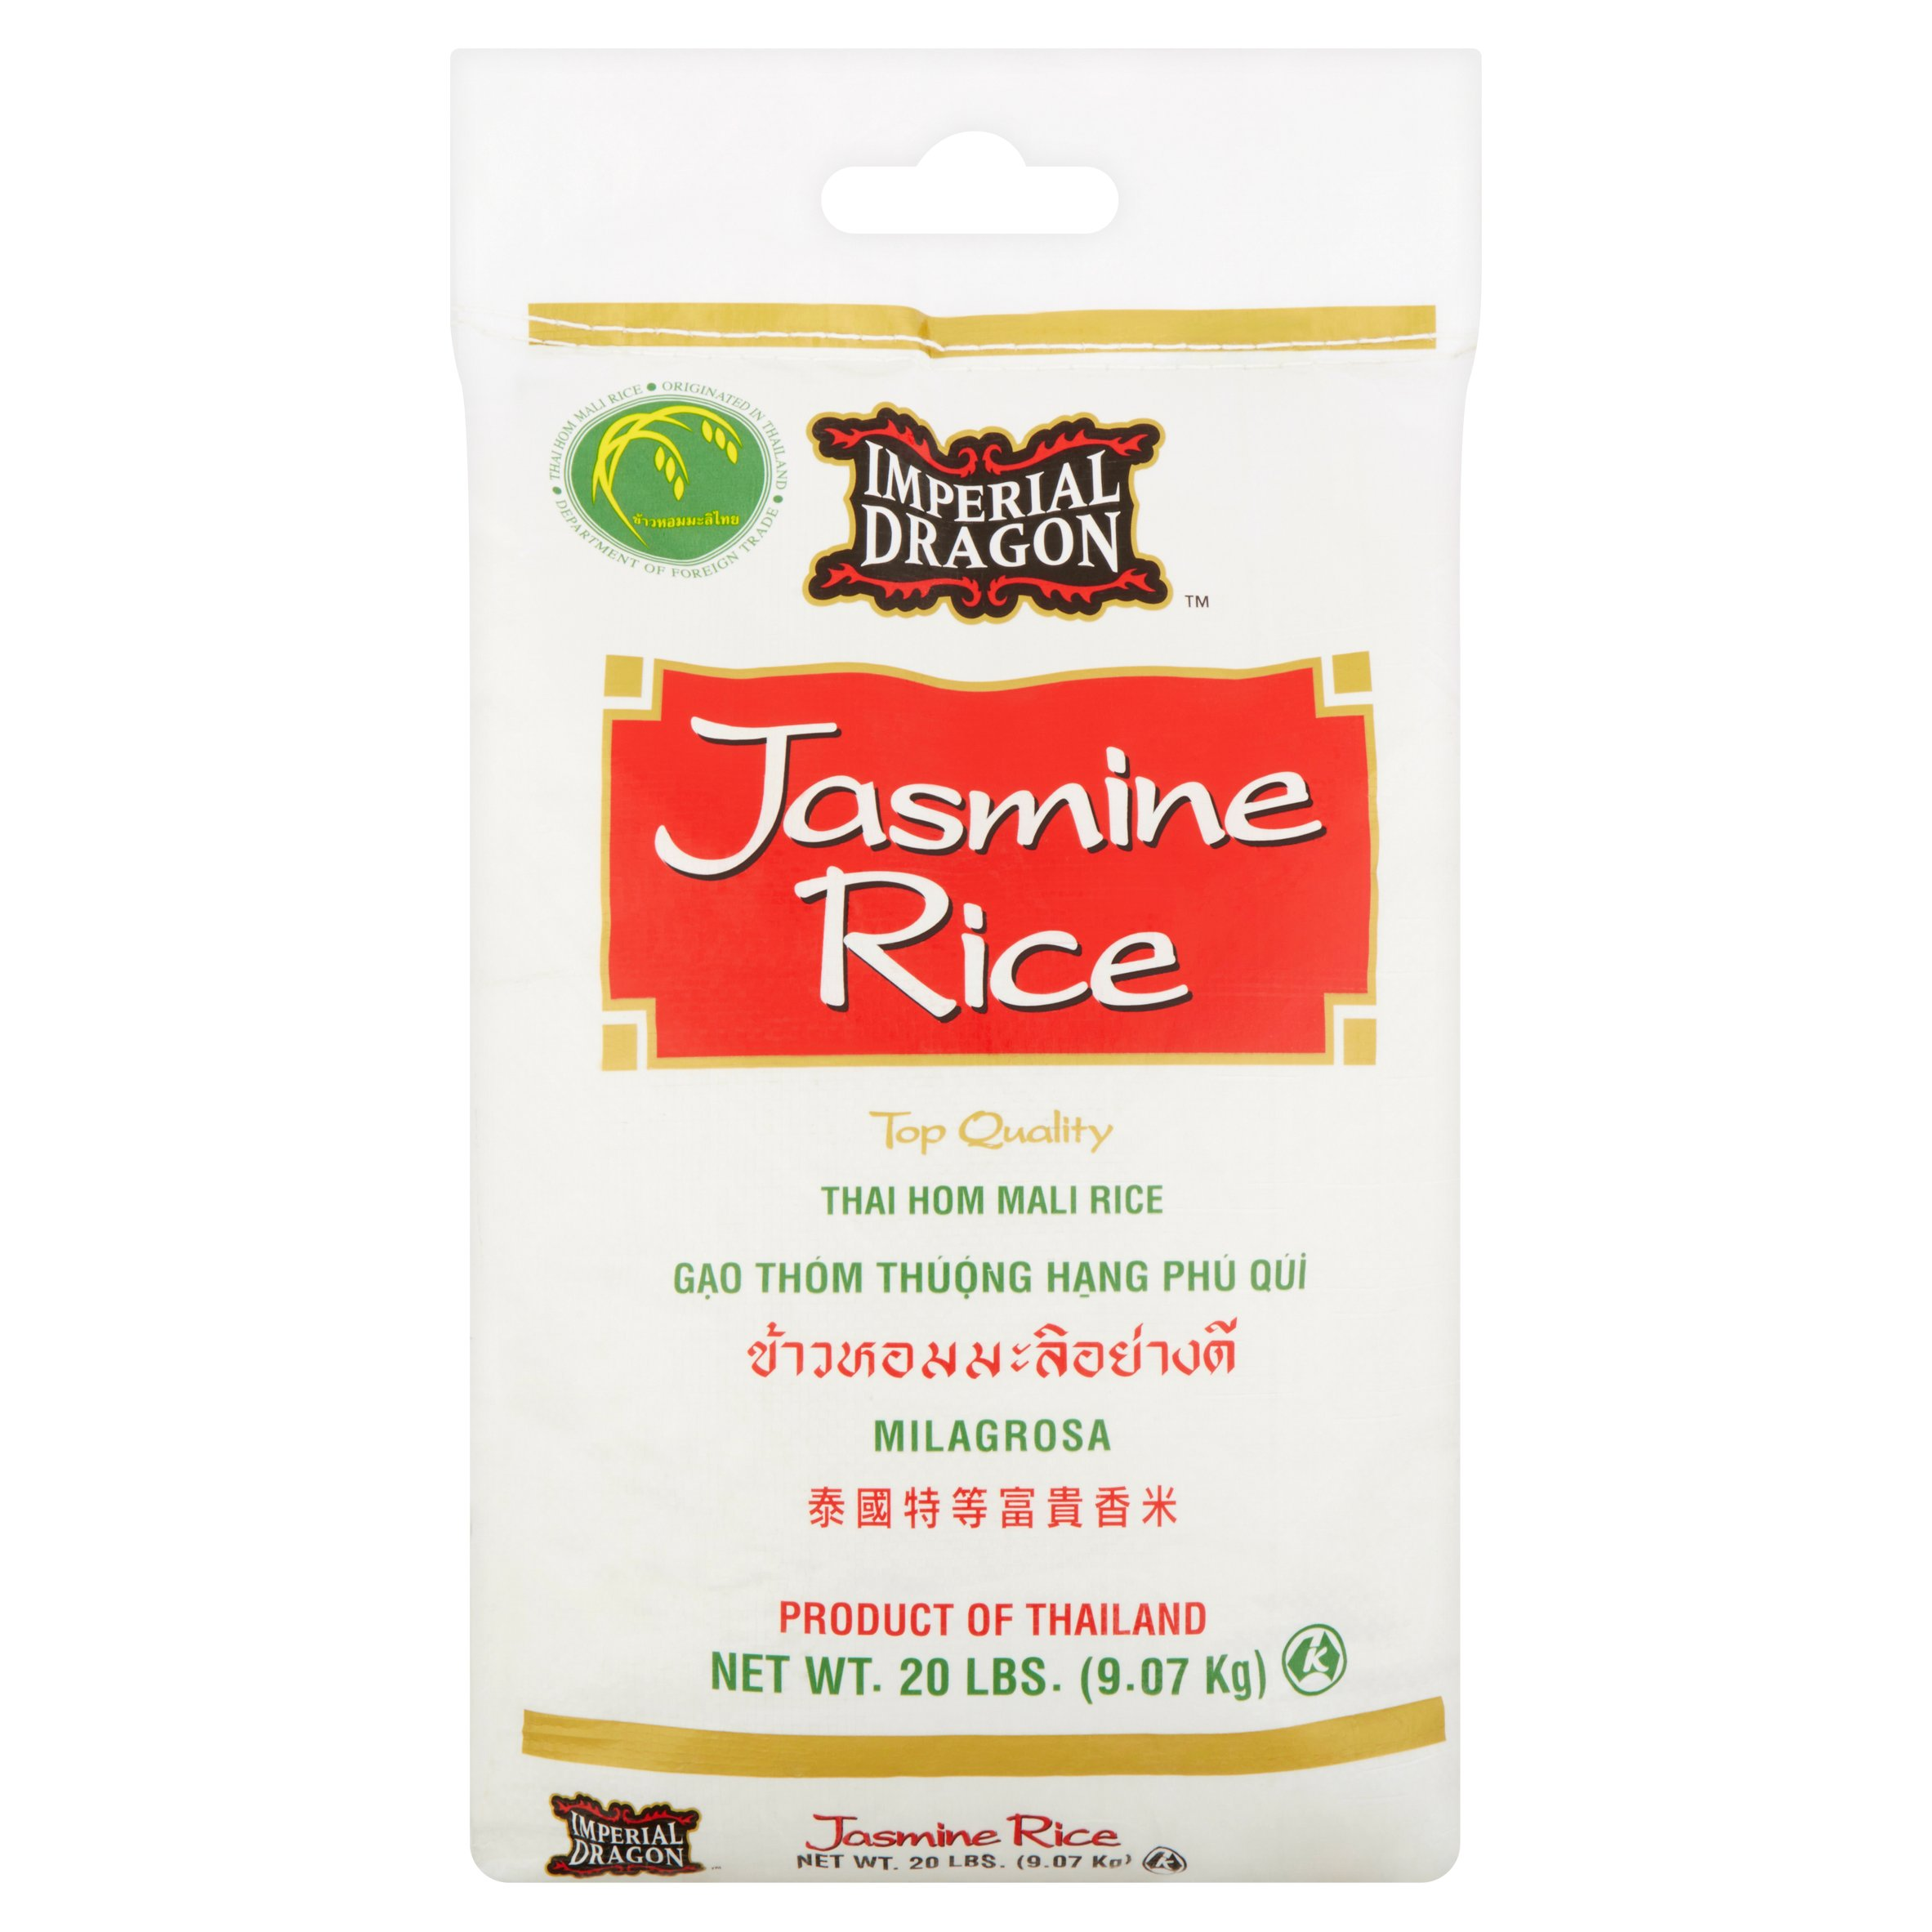 Imperial Dragon Jasmine Rice, 20 Lb - $0.9/lb